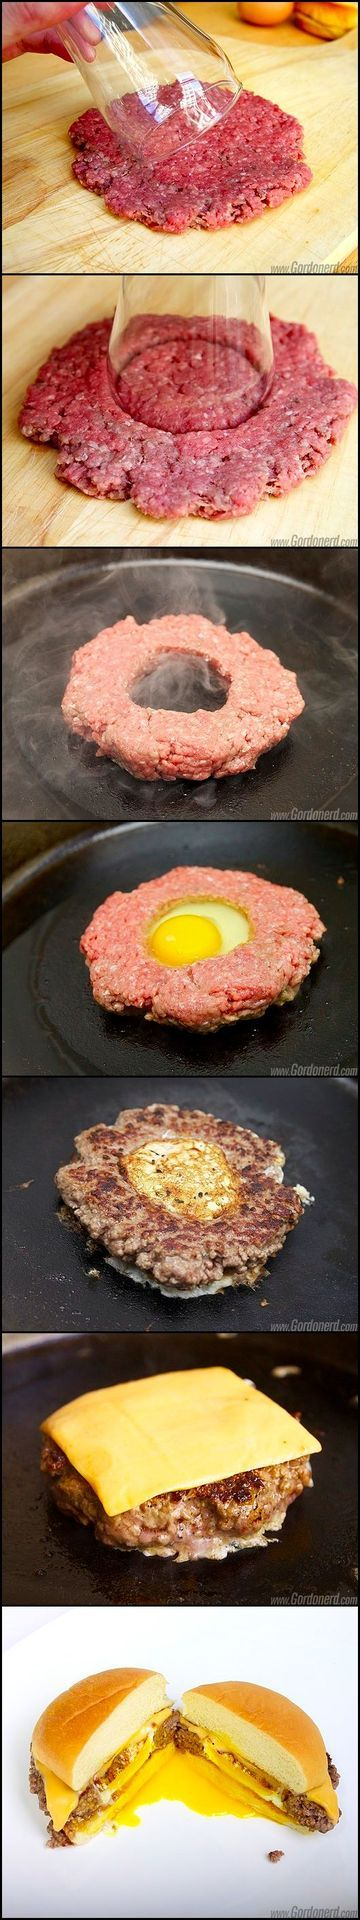 Awesome sausage breakfast sandwich idea! Also can substitute for turkey sausage or ground turkey